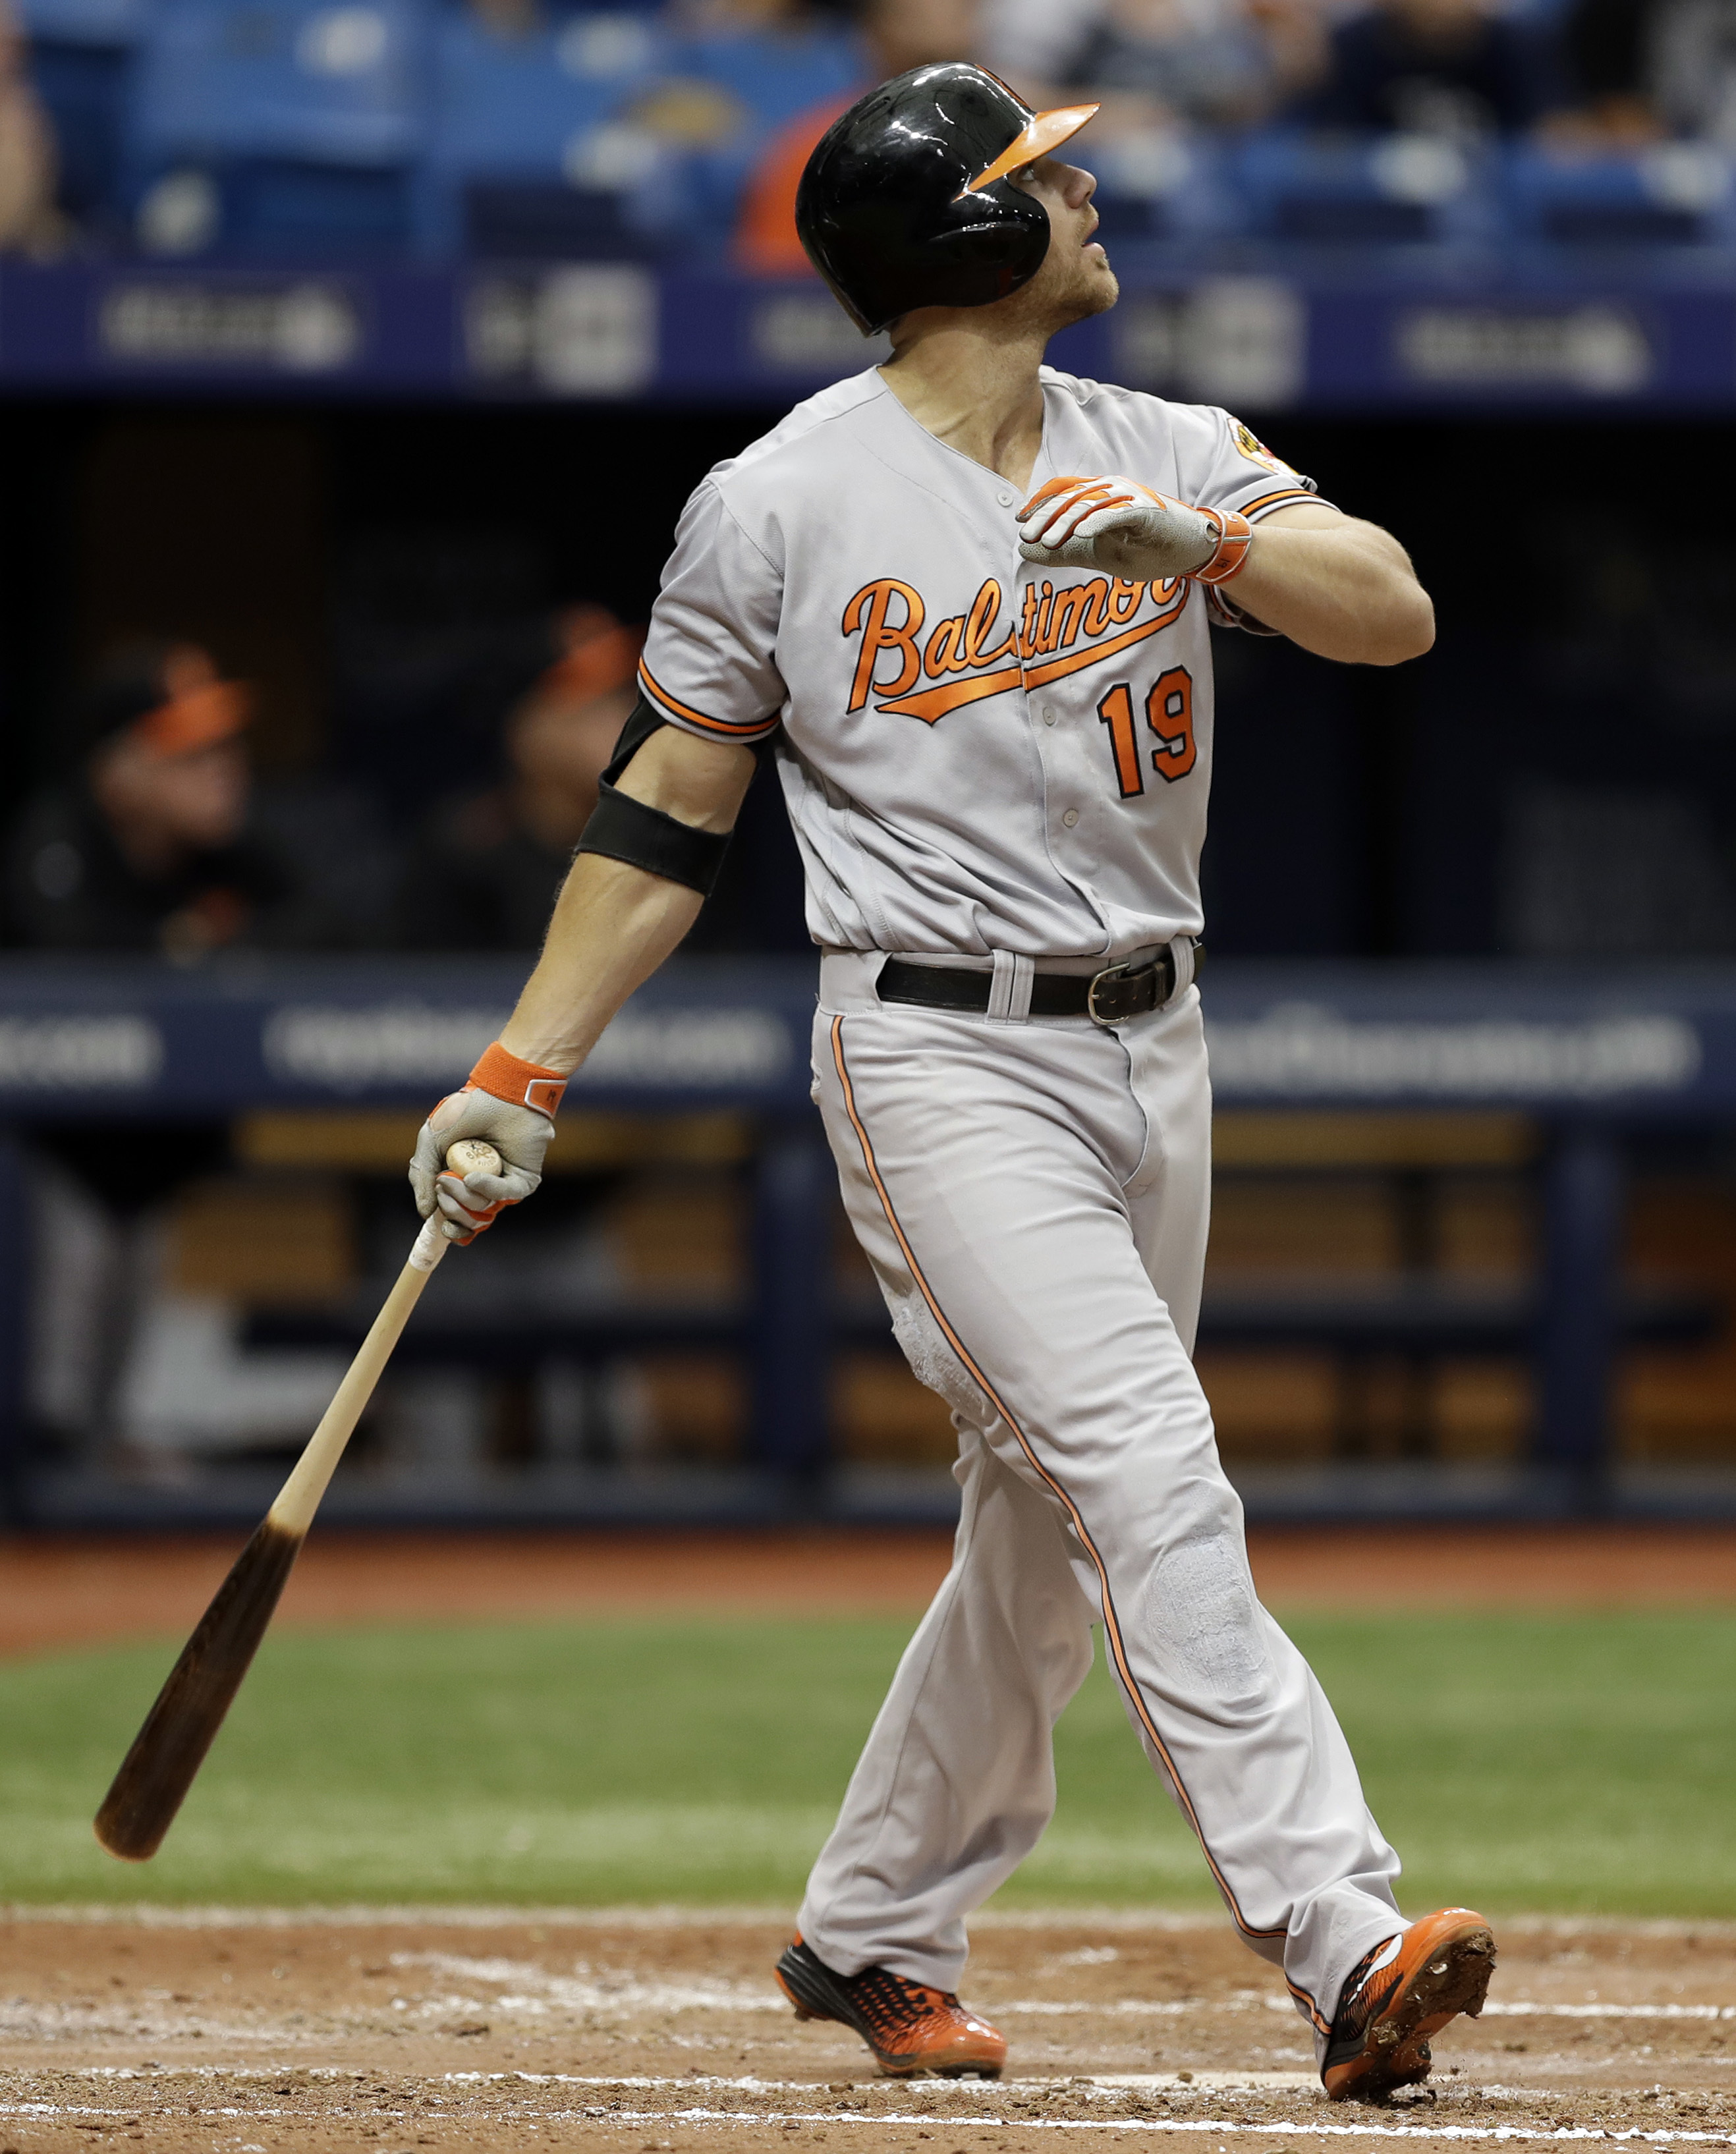 Baltimore Orioles' Chris Davis watches his home run off Tampa Bay Rays starting pitcher Matt Andriese during the fifth inning of a baseball game Monday, Sept. 5, 2016, in St. Petersburg, Fla. (AP Photo/Chris O'Meara)